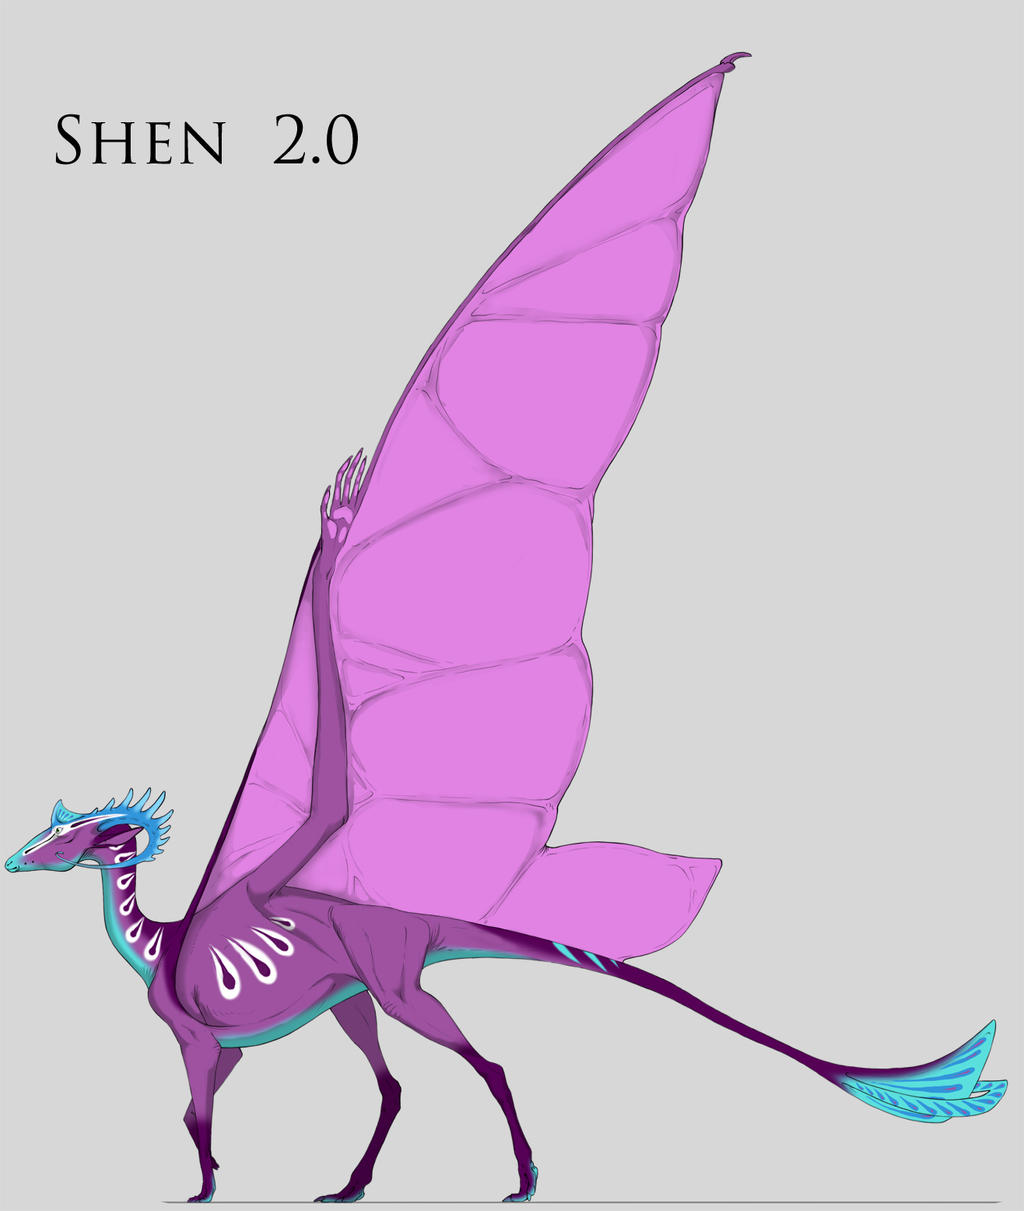 Shen 2.0 by Teggy